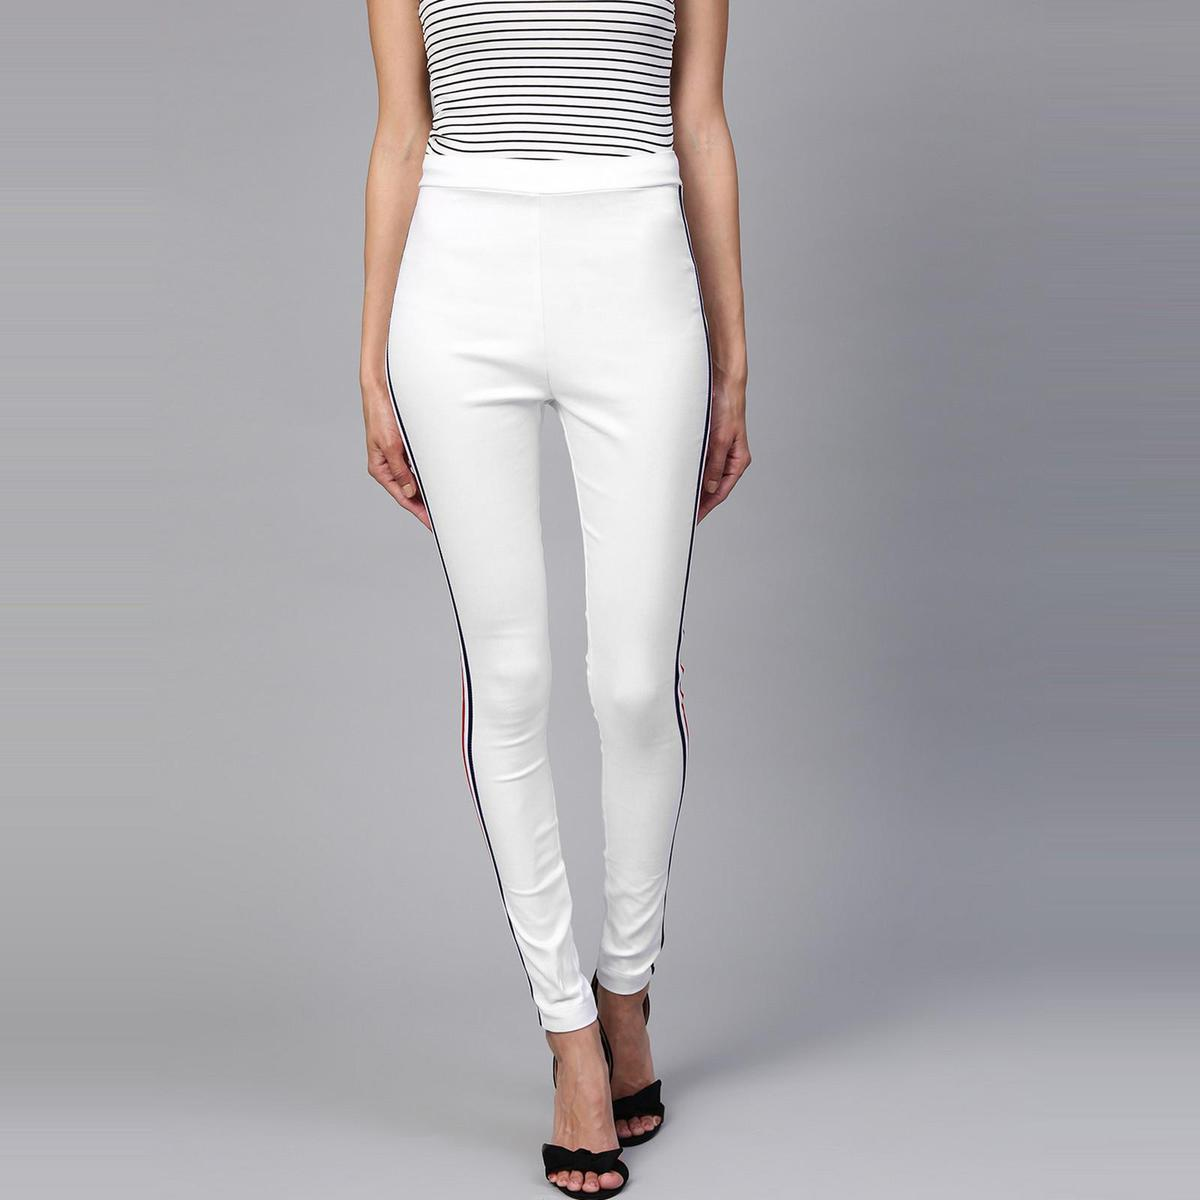 Zima Leto - Women's White Jegging With MultiColor Side Taping